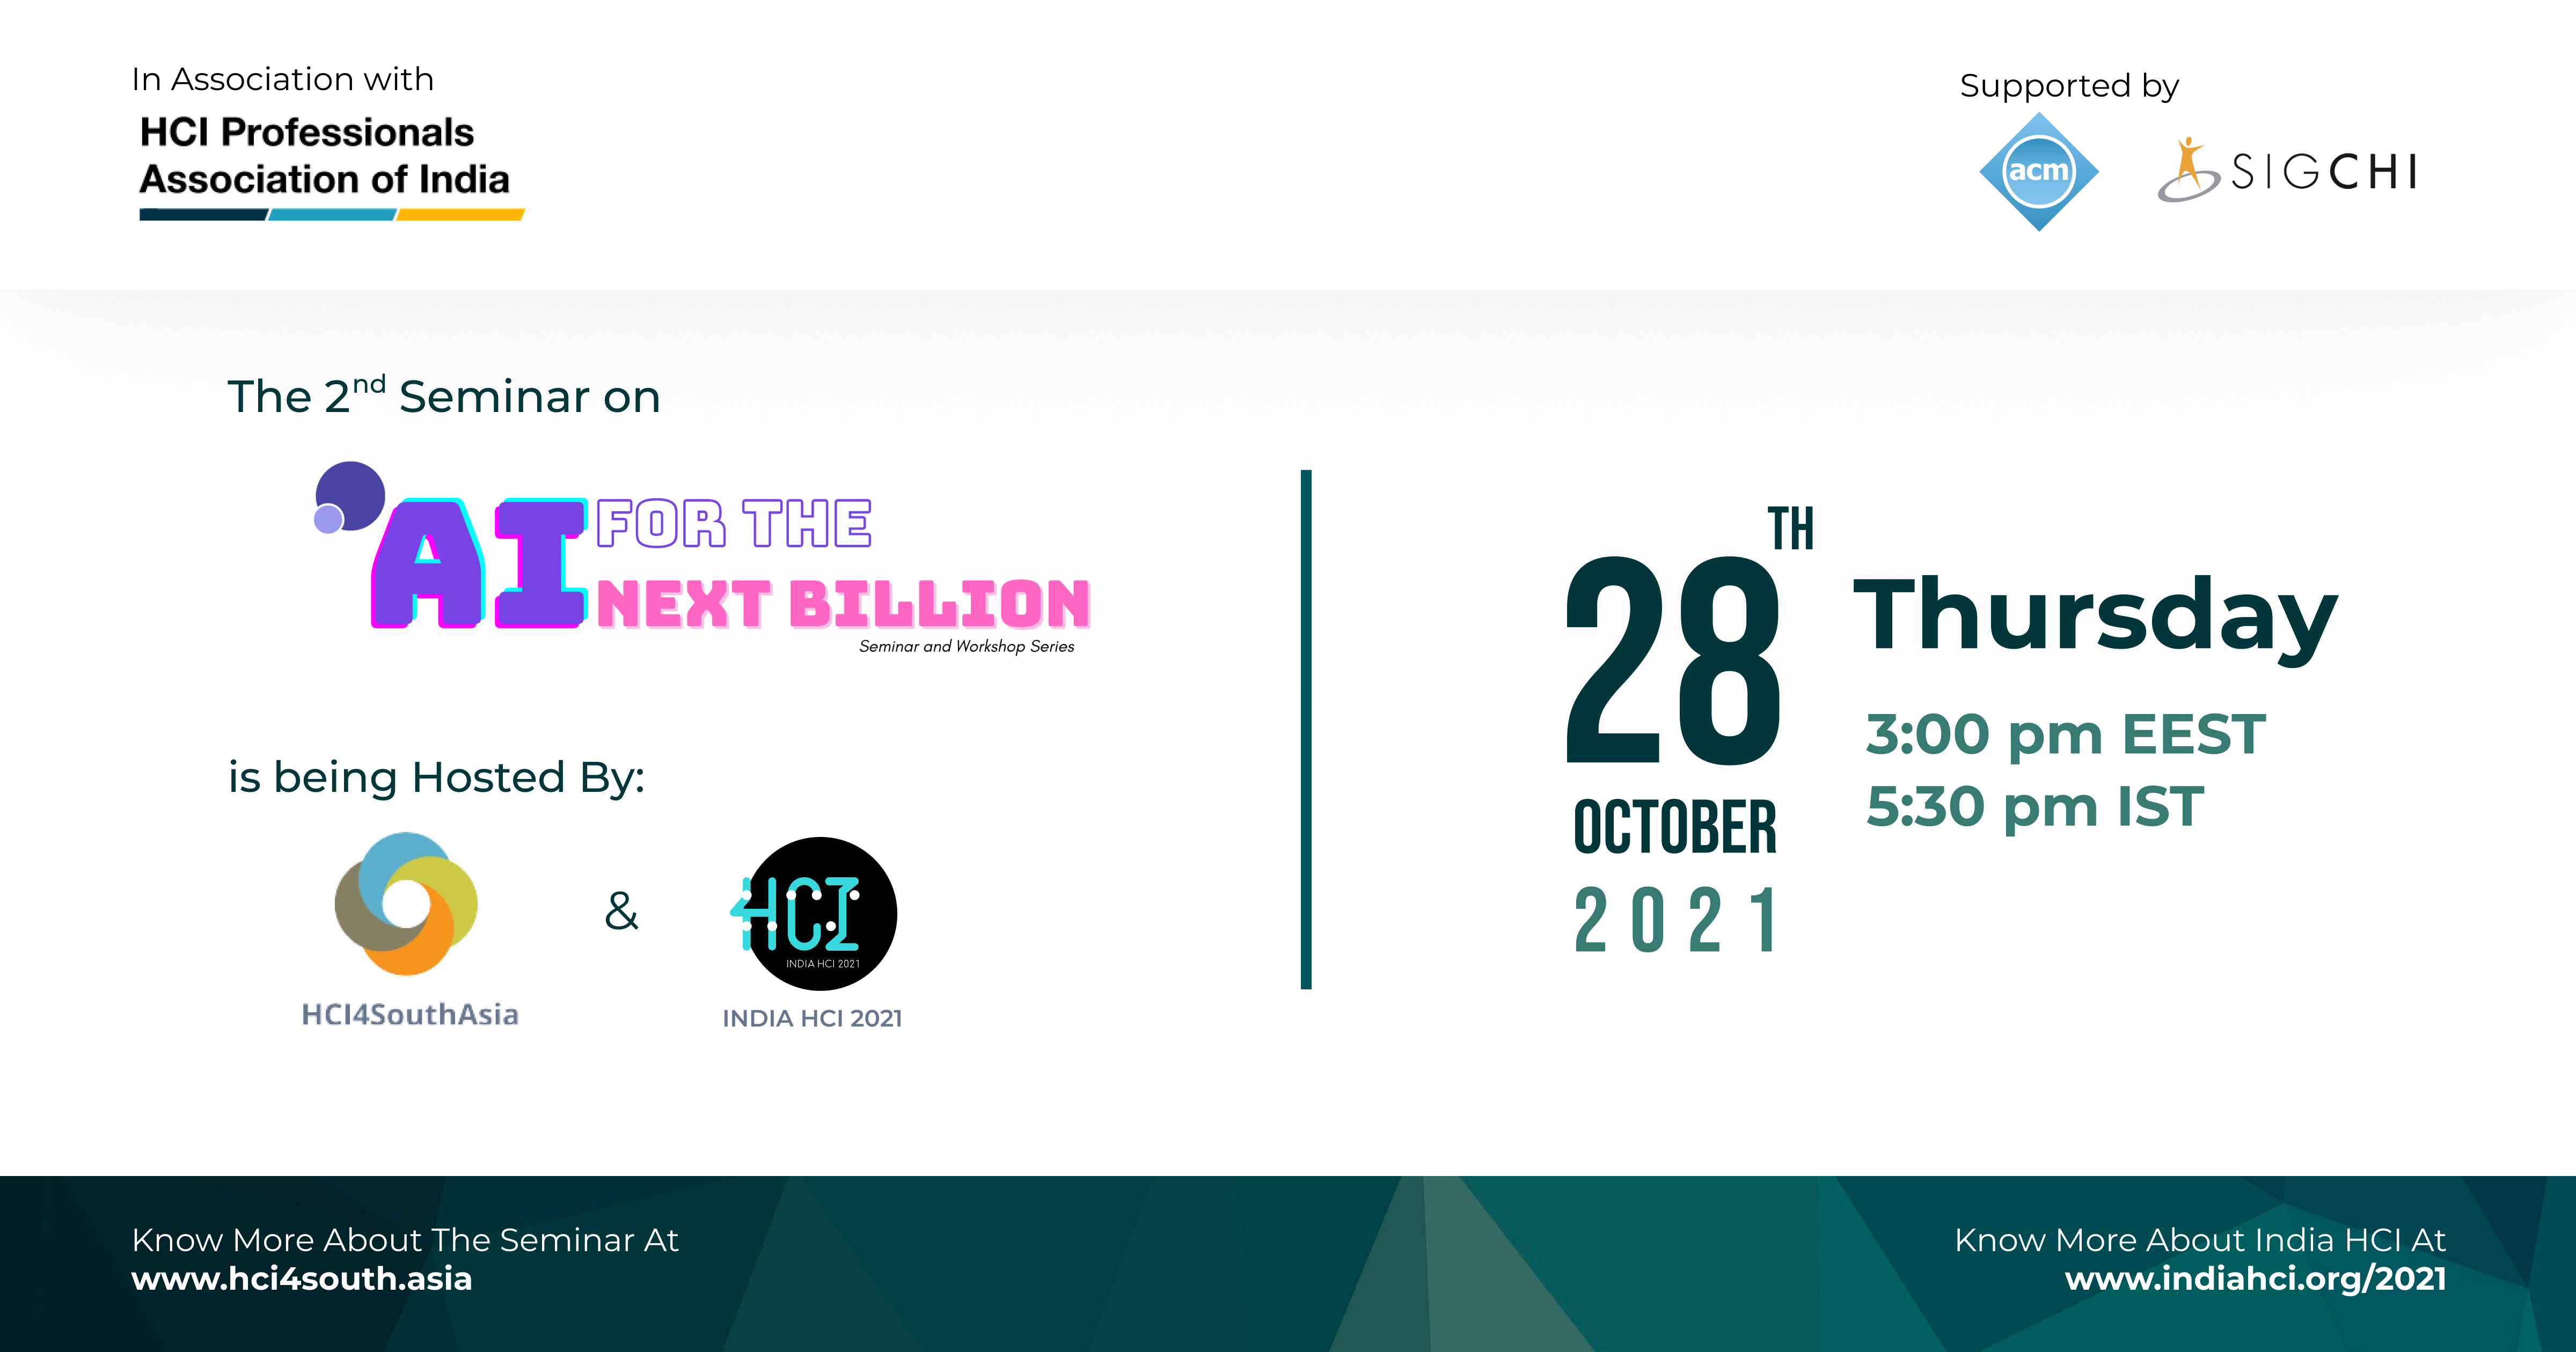 HCI4SouthAsia (HCI4SA) and India HCI 2021 Prelude will host the second Seminar on AI4NB in collaboration with the University of Oulu, Women in AI in Finland, MIT Institute of Design & UNICEF Finland.